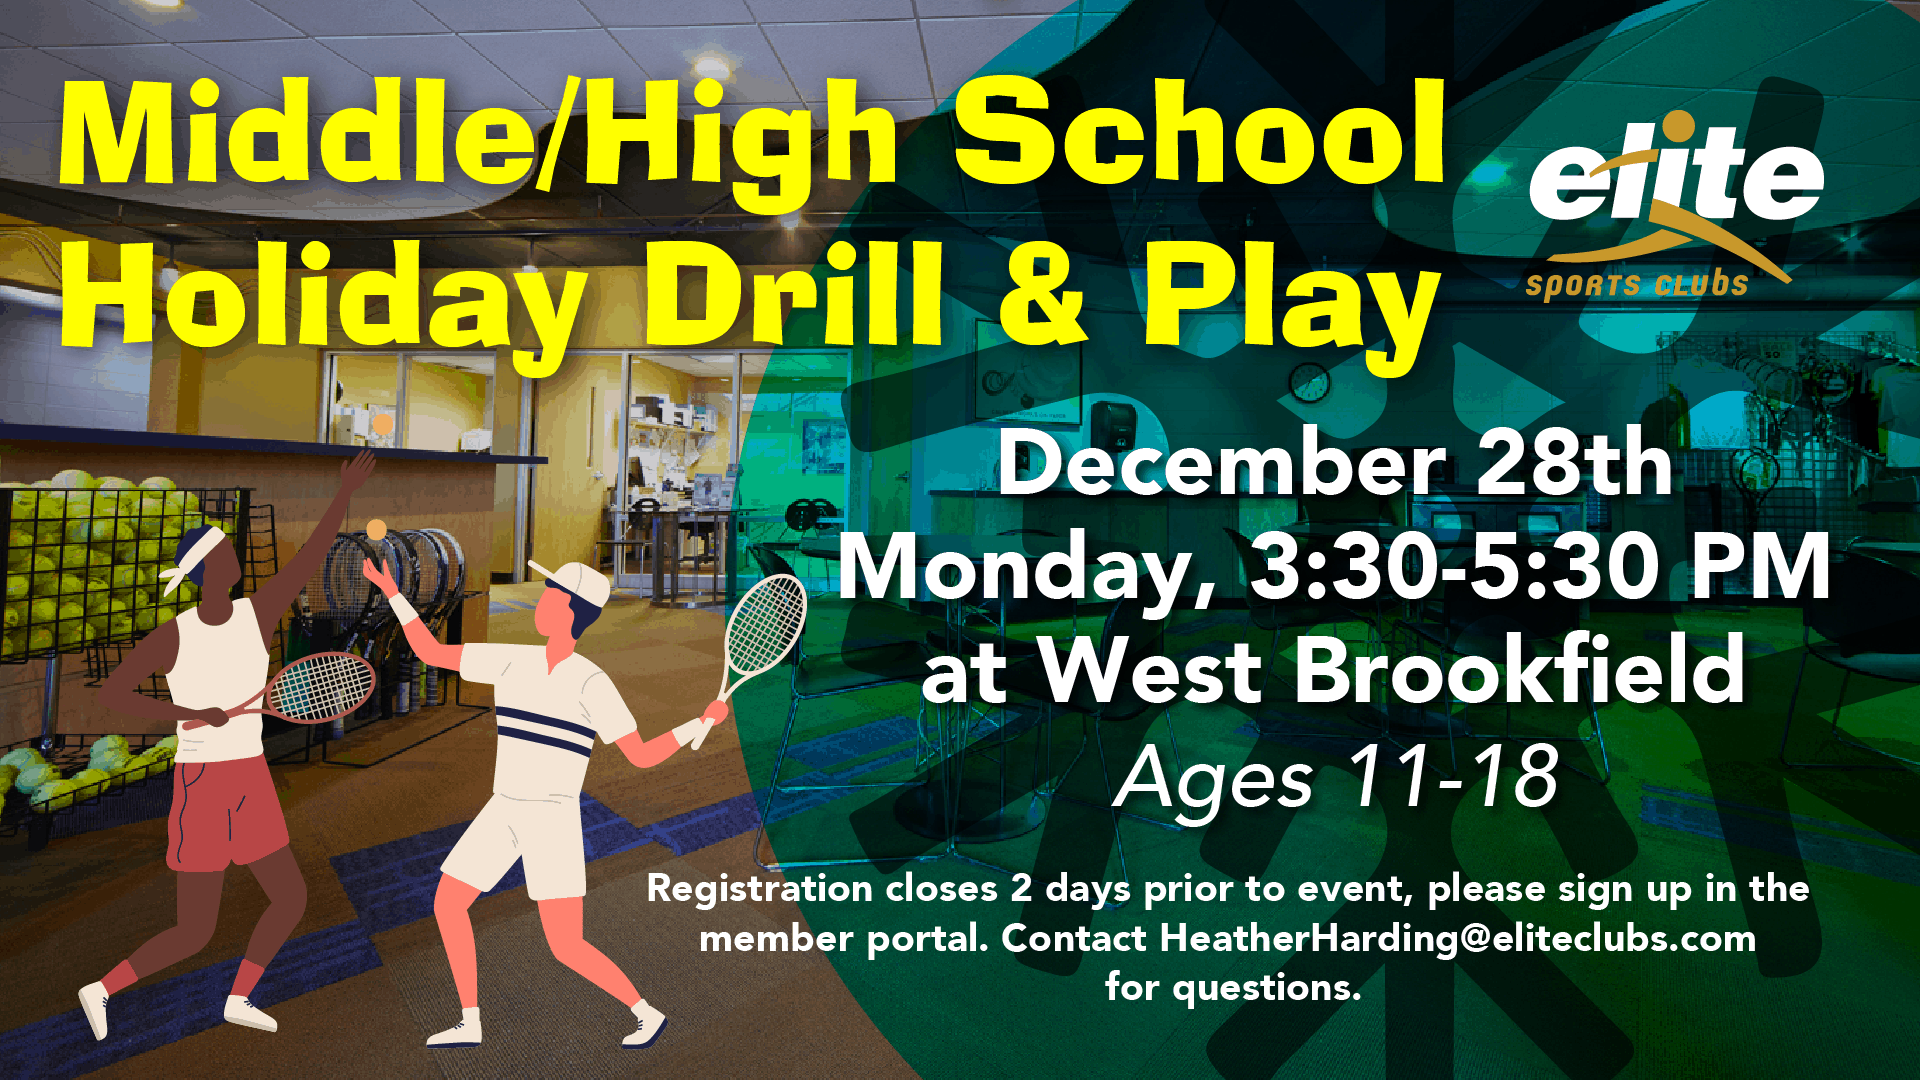 Middle High School Holiday Drill & Play - Elite West Brookfield - December 2020